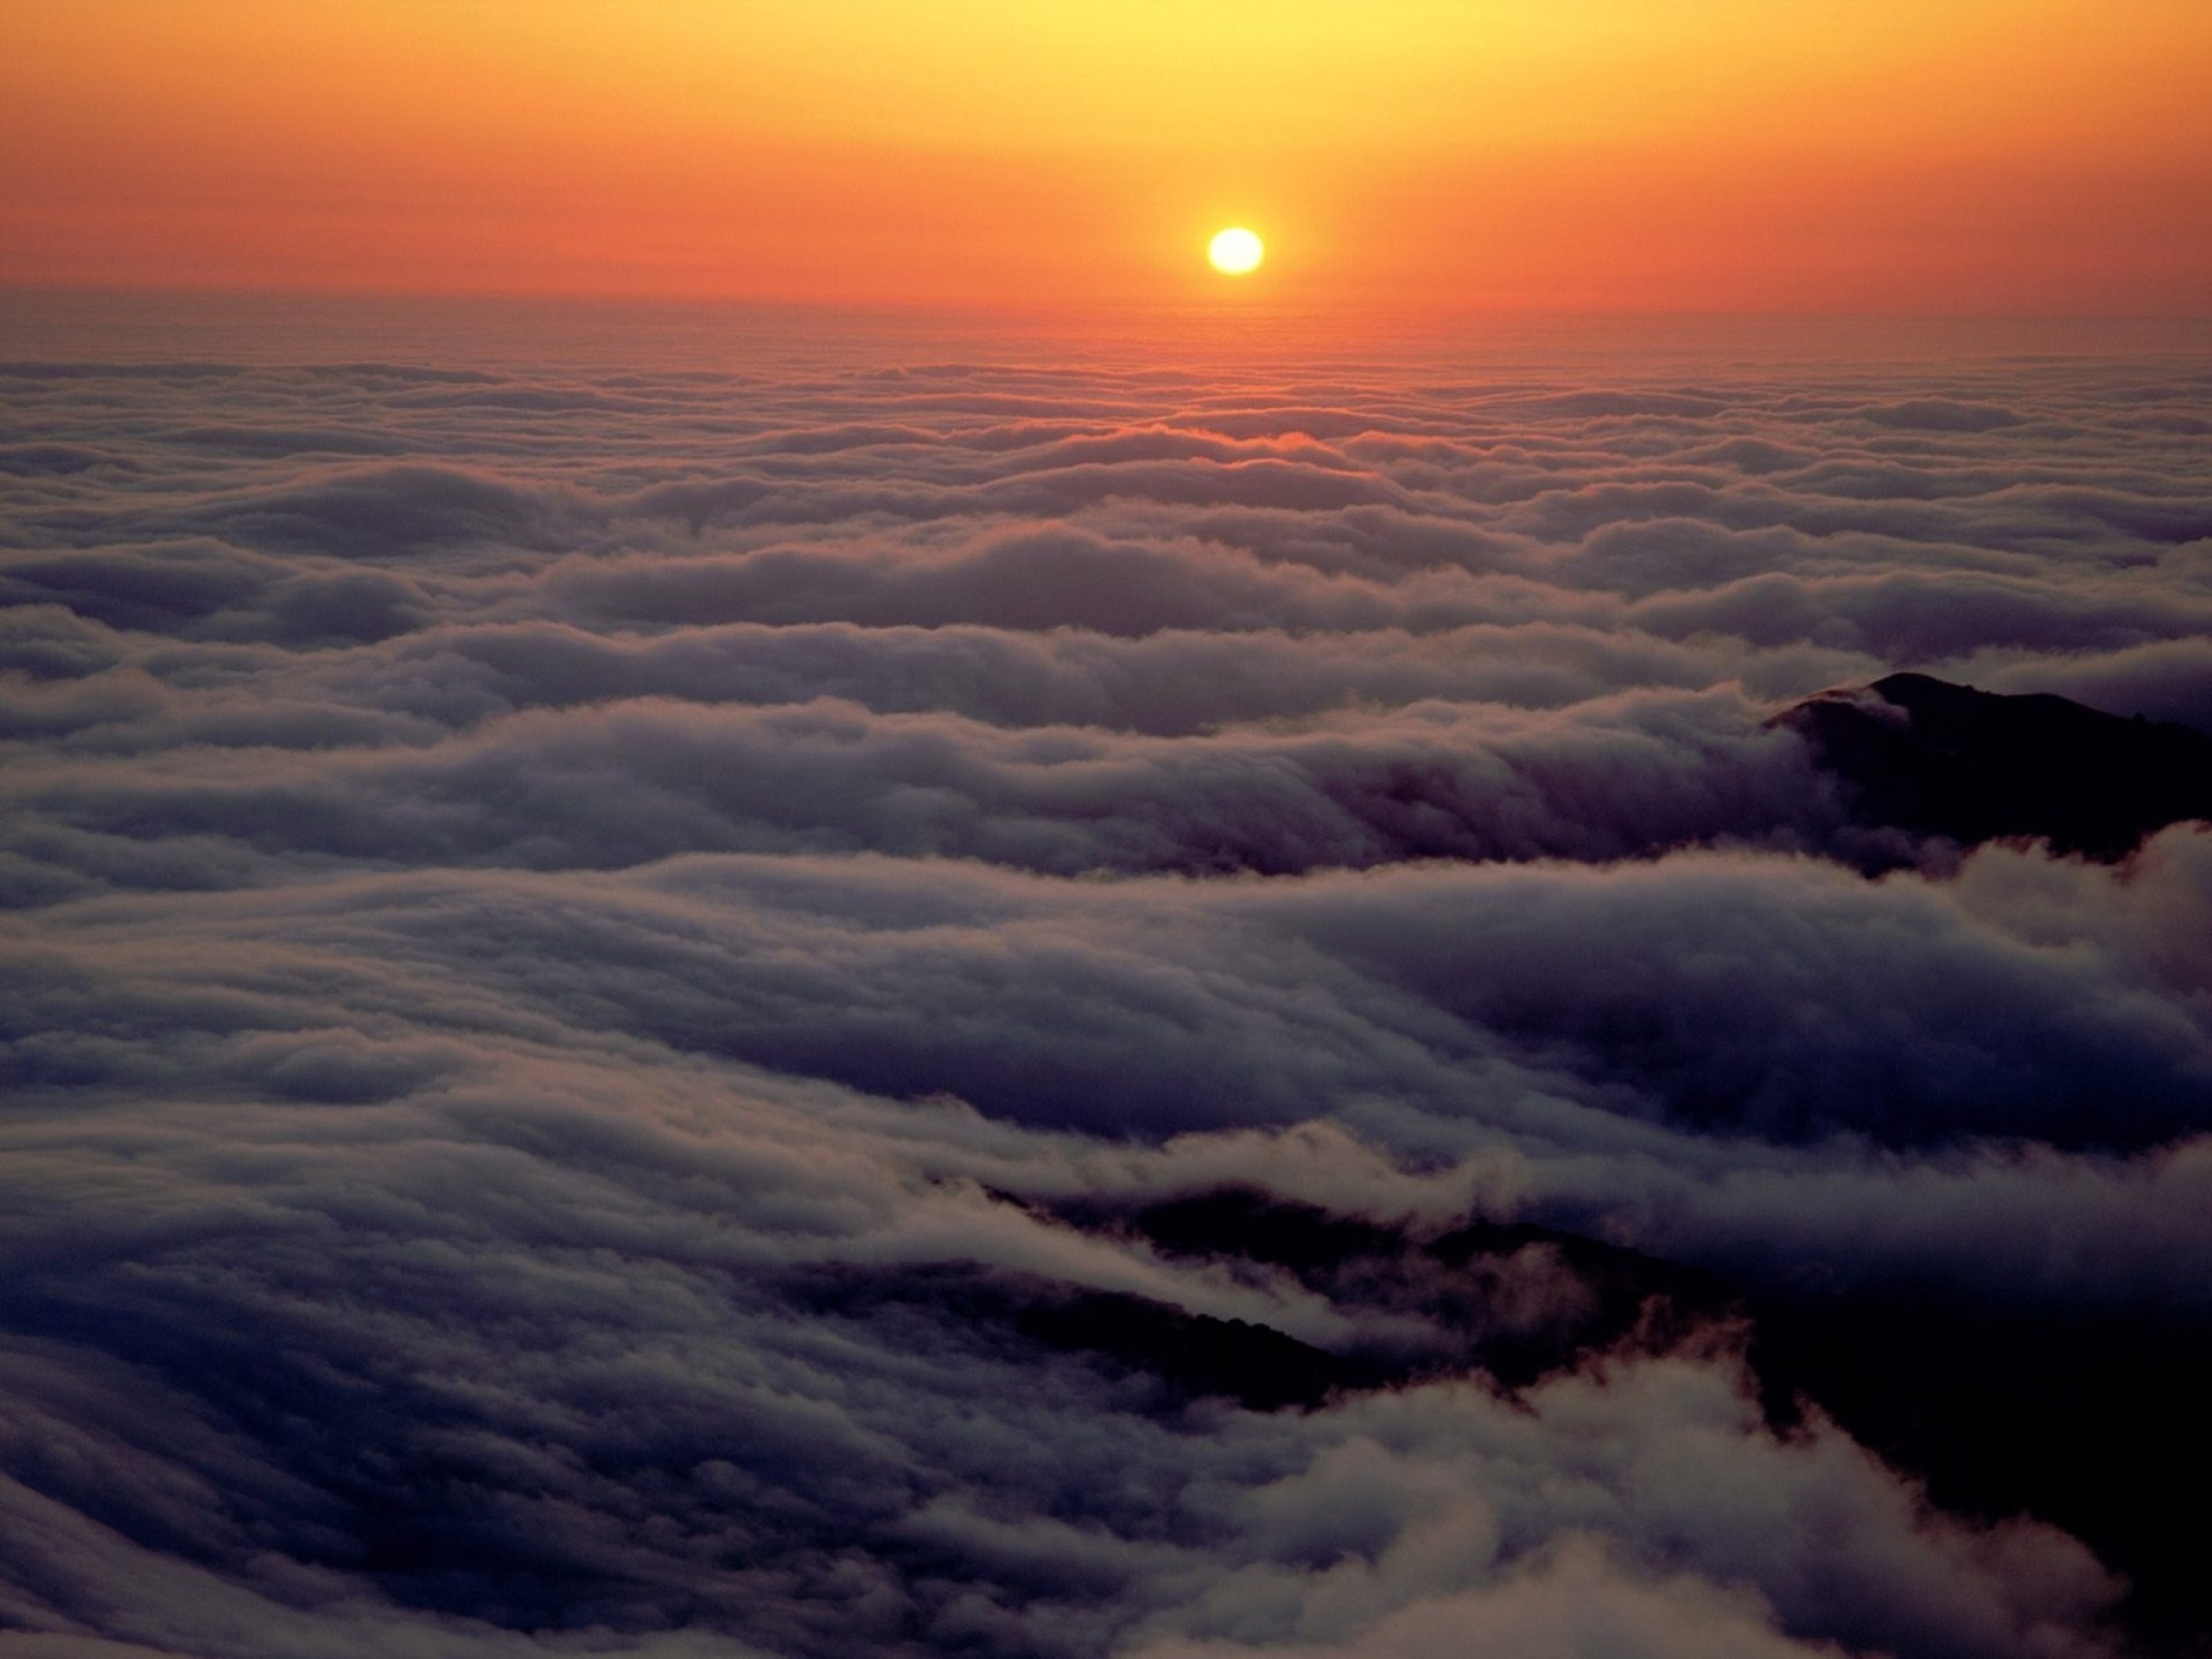 sunset sea of clouds wallpapers sunset sea of clouds stock photos sunset sea of clouds wallpapers